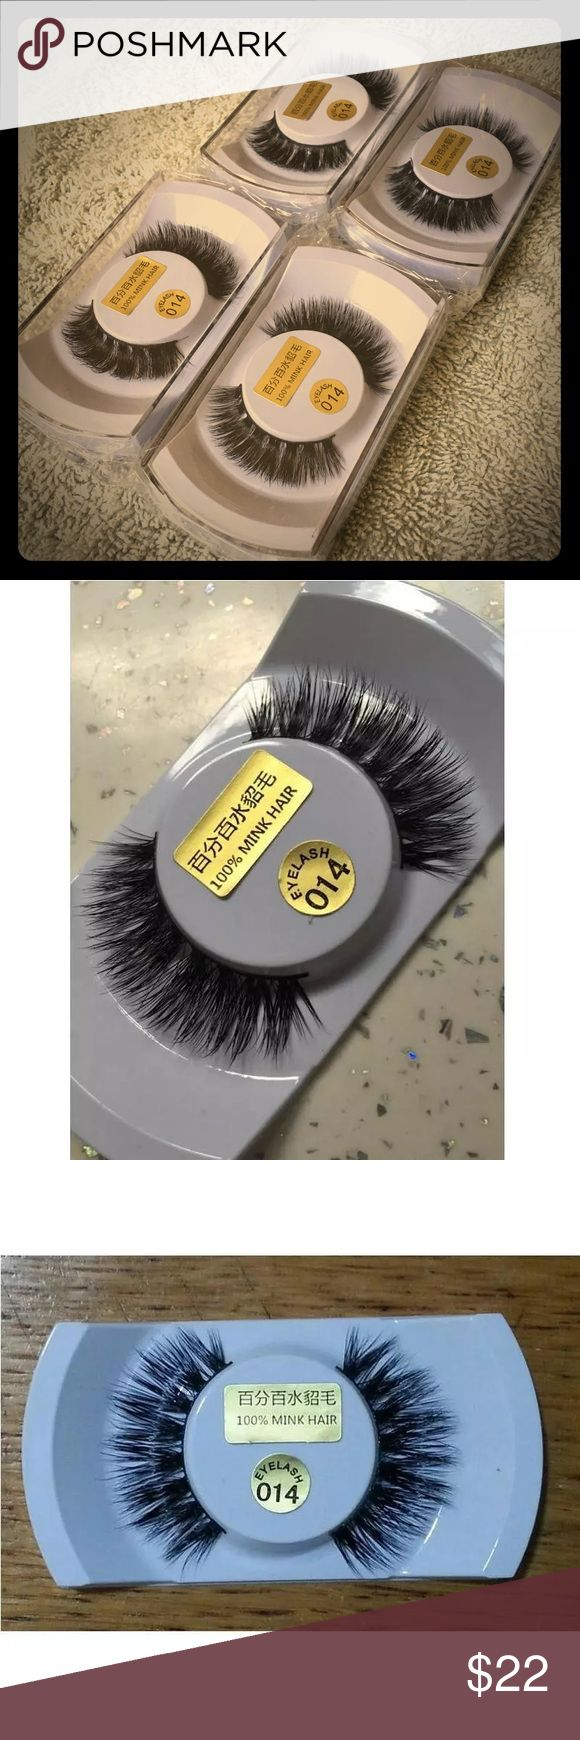 🔥🔥4pairs 100% real mink hair 100% real mink hair natural black tick ! Price is firmed Makeup False Eyelashes